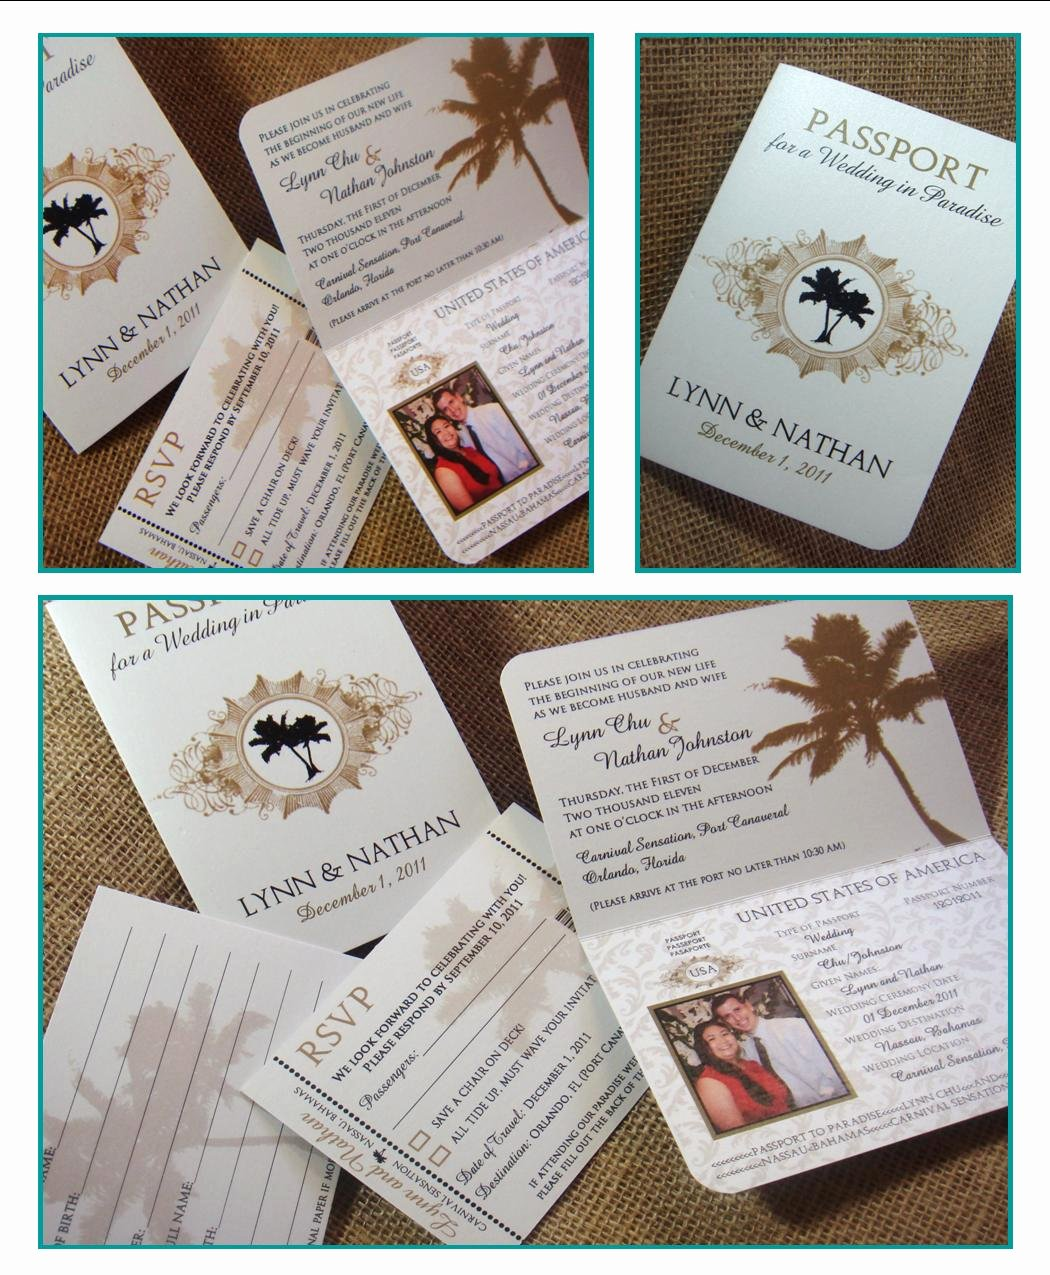 Passport Invitation Template Free Best Of From Me 2 You Creations Chu Wedding Passport Invitations